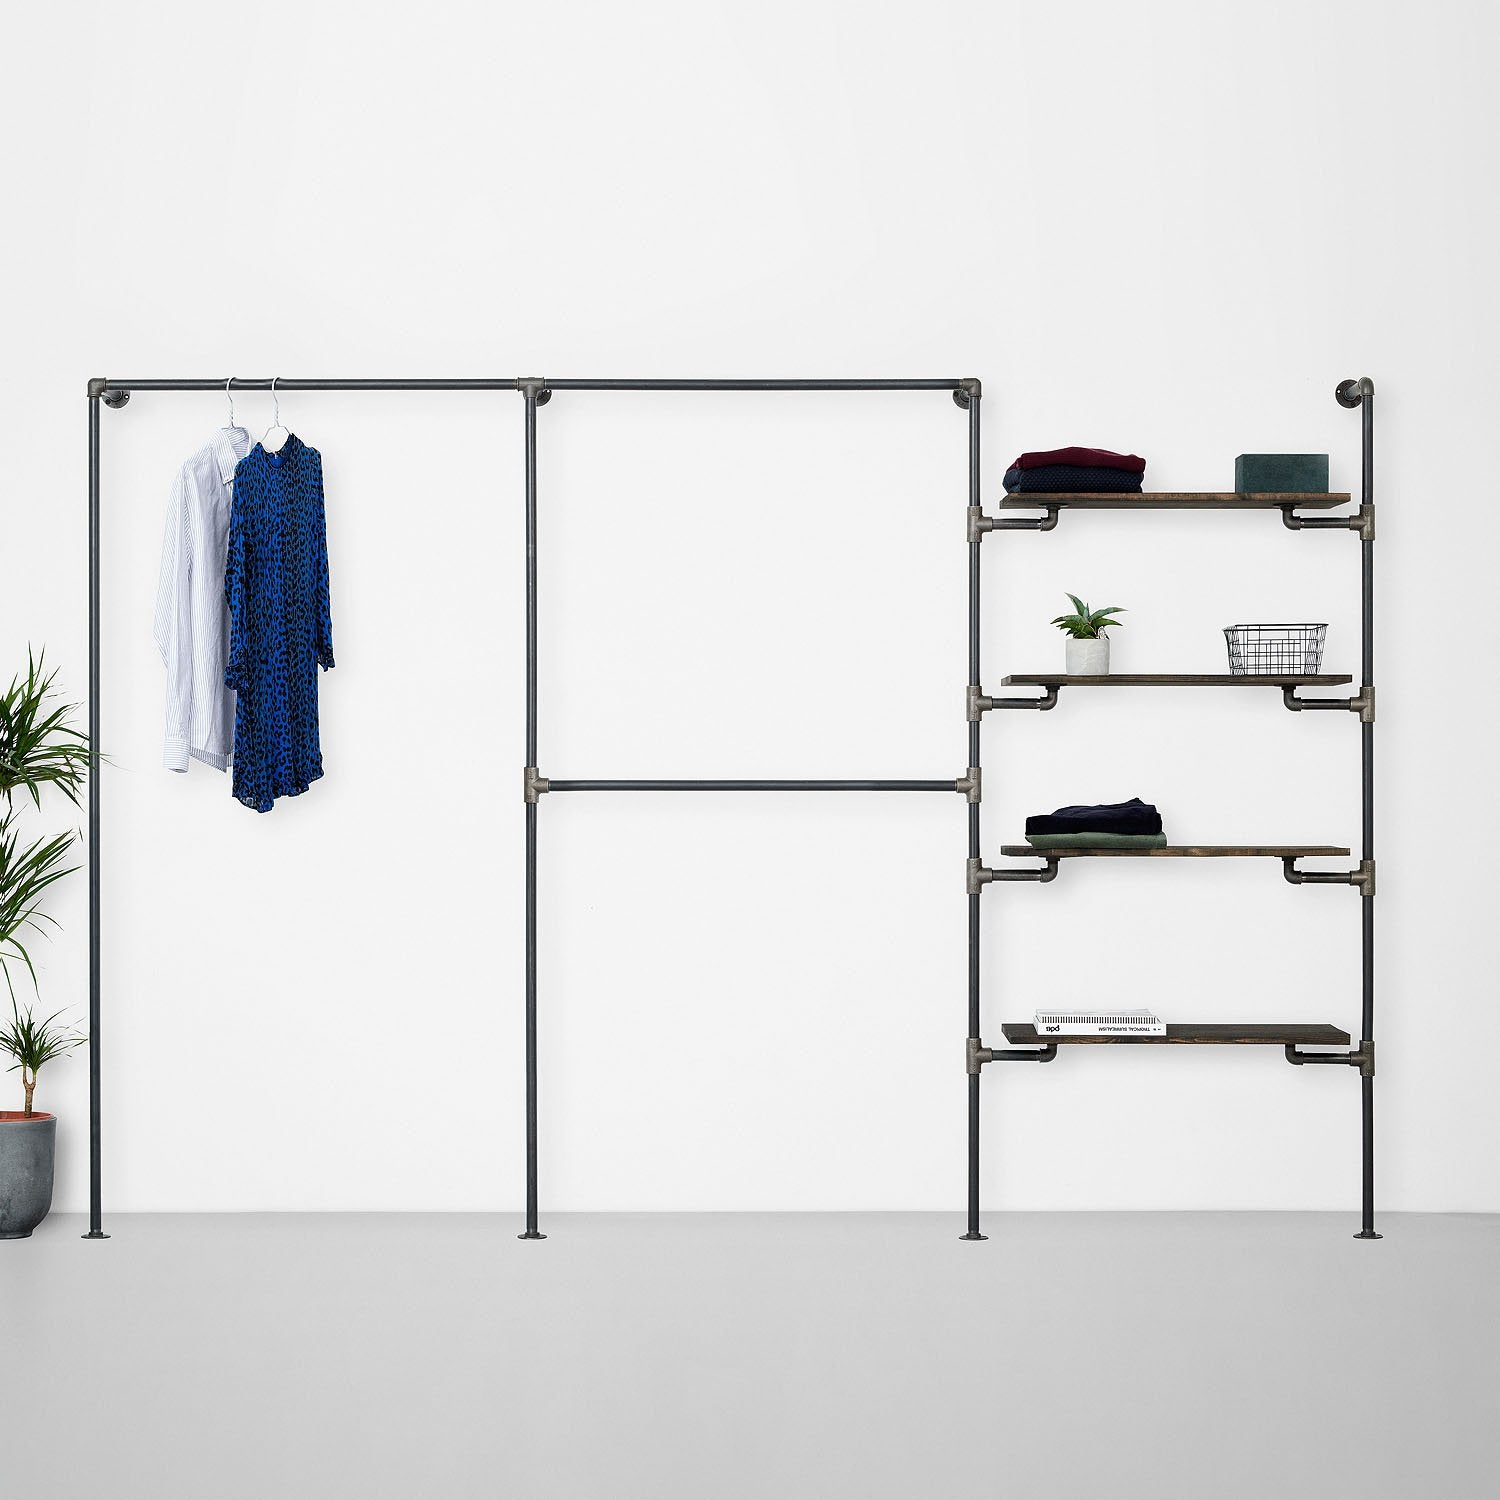 The Walk-In 3 row wardrobe system - 1 rail / 2 rails/ 4 shelves